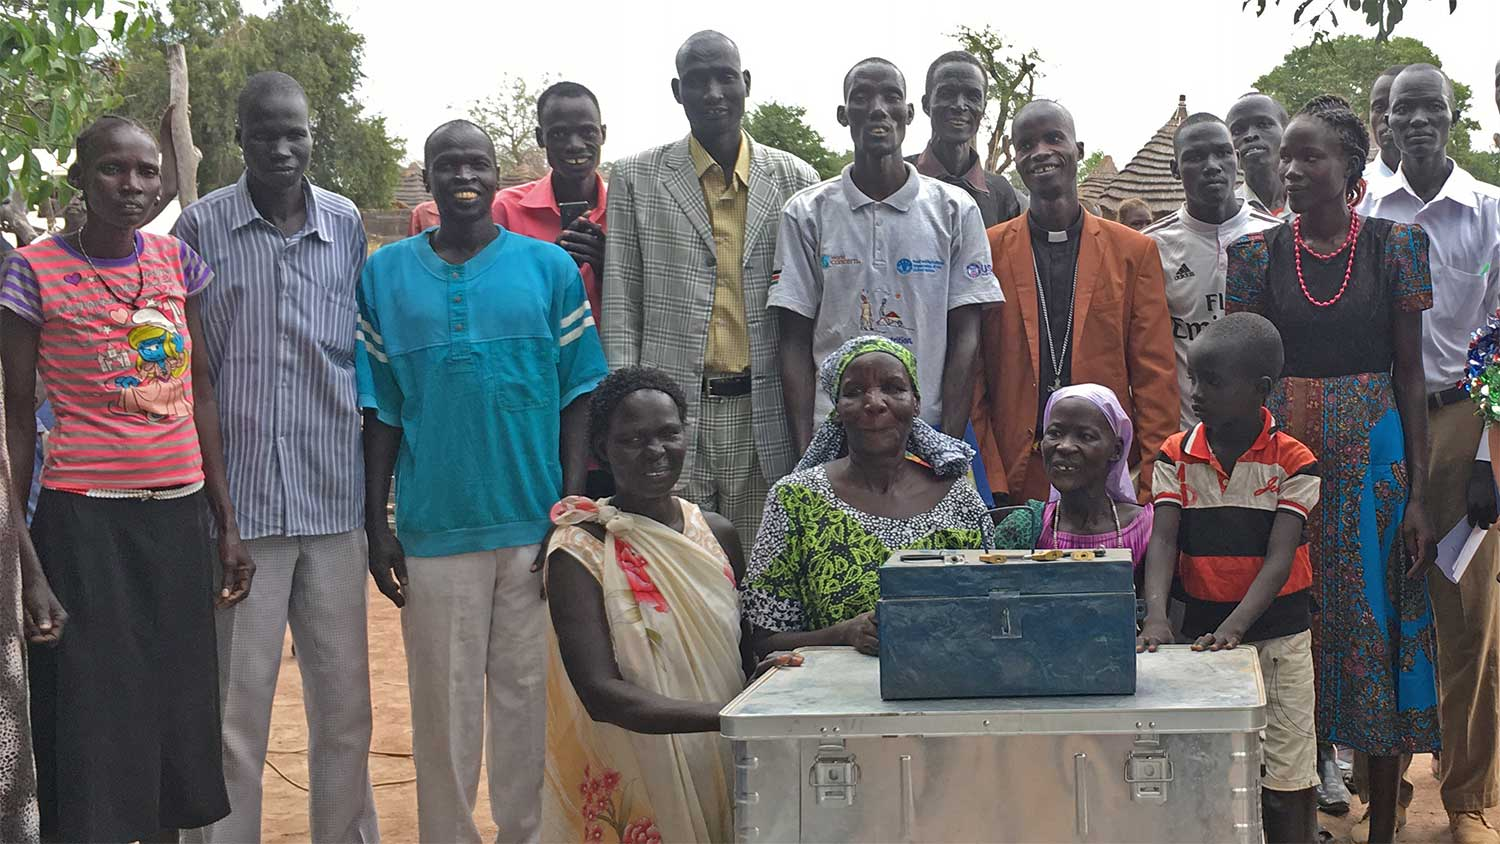 Members of a Five Talents savings group in South Sudan.